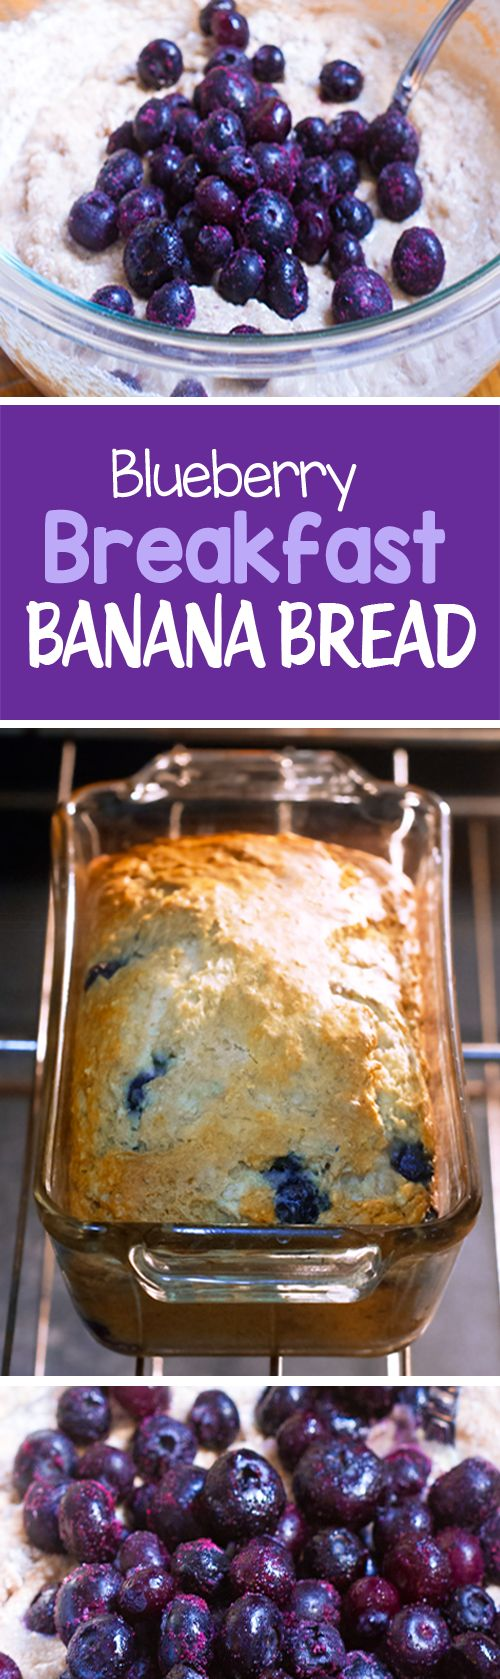 Blueberry Banana Bread, with NO oil, and no refined sugar, great for breakfast or a healthy snack